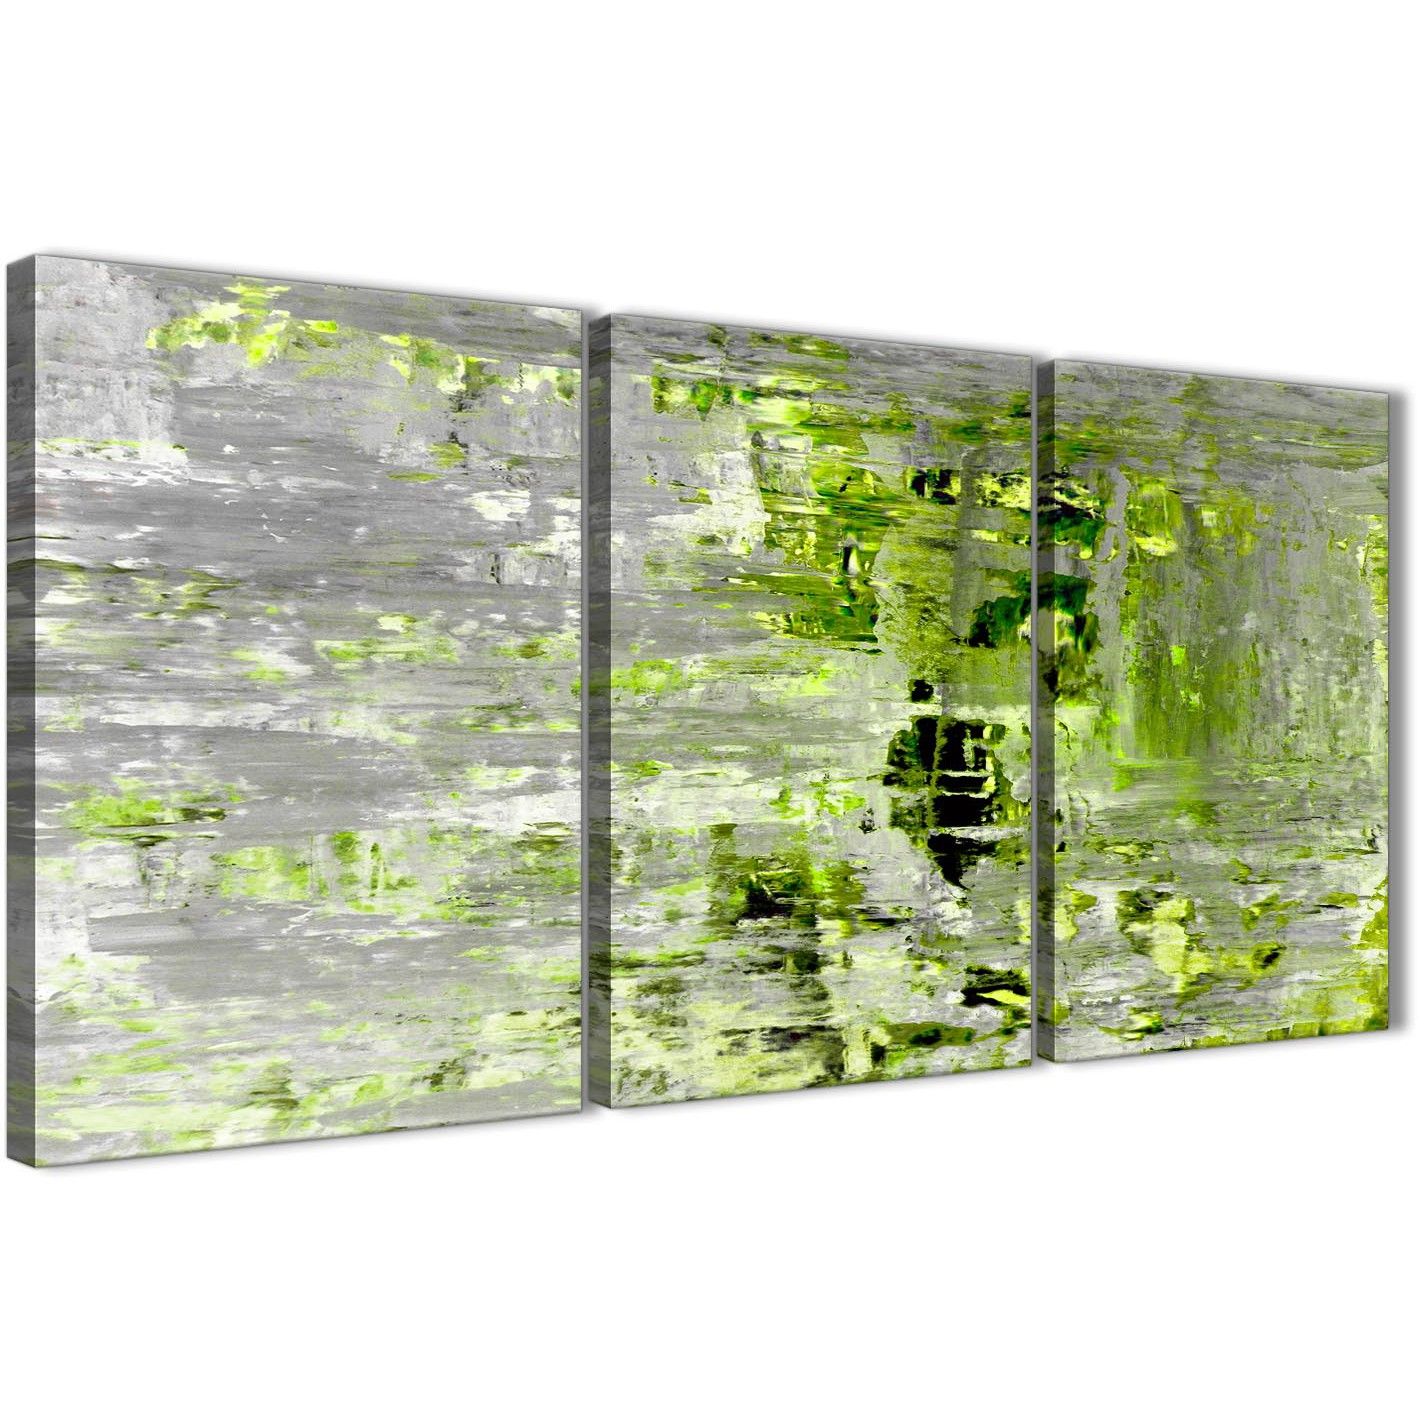 100 cm wide sofa bed baby chair lime green grey abstract painting wall art print canvas ...